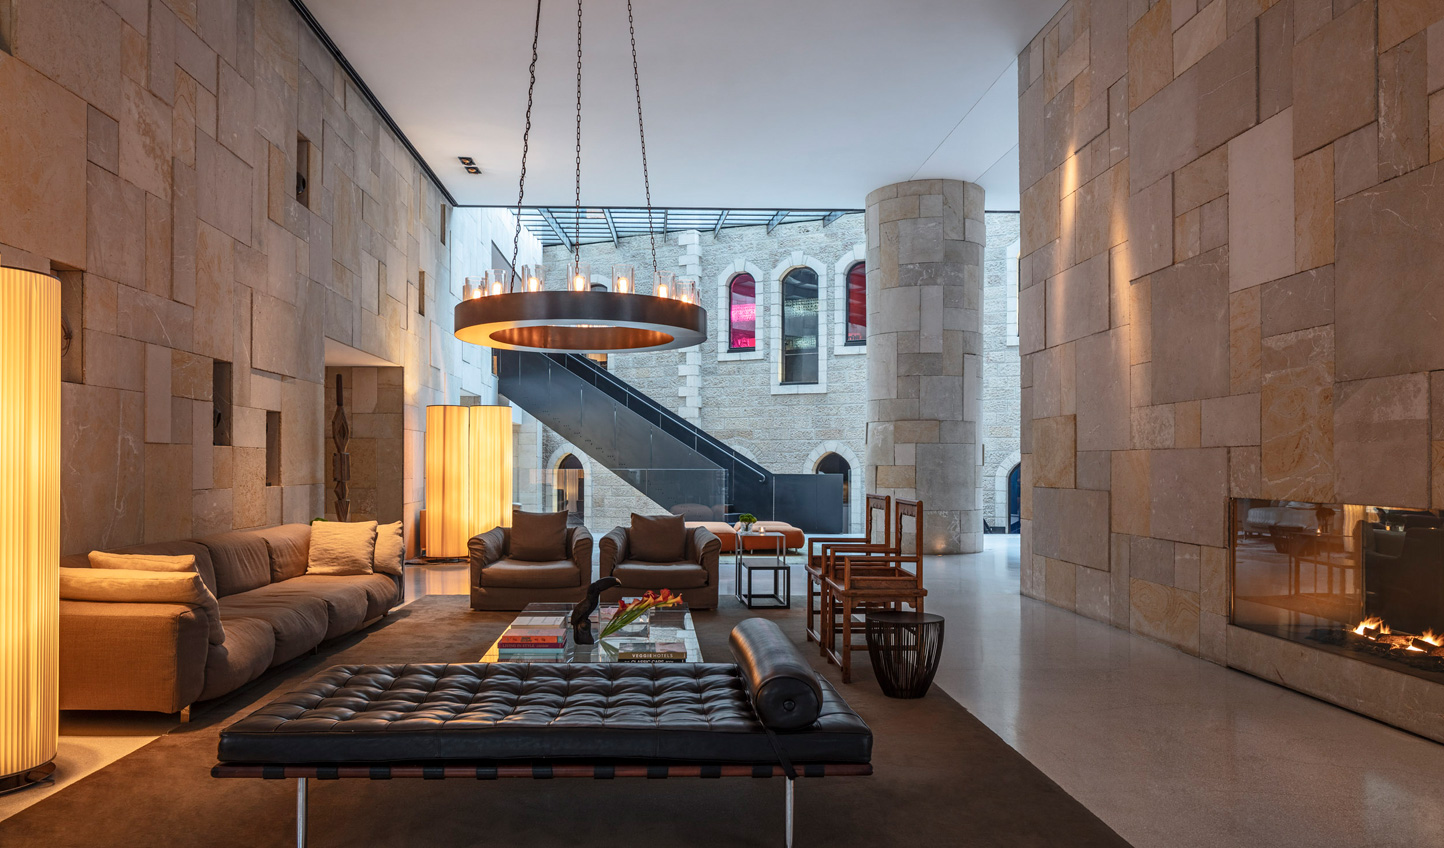 Period features give Mamilla Hotel a sense of place